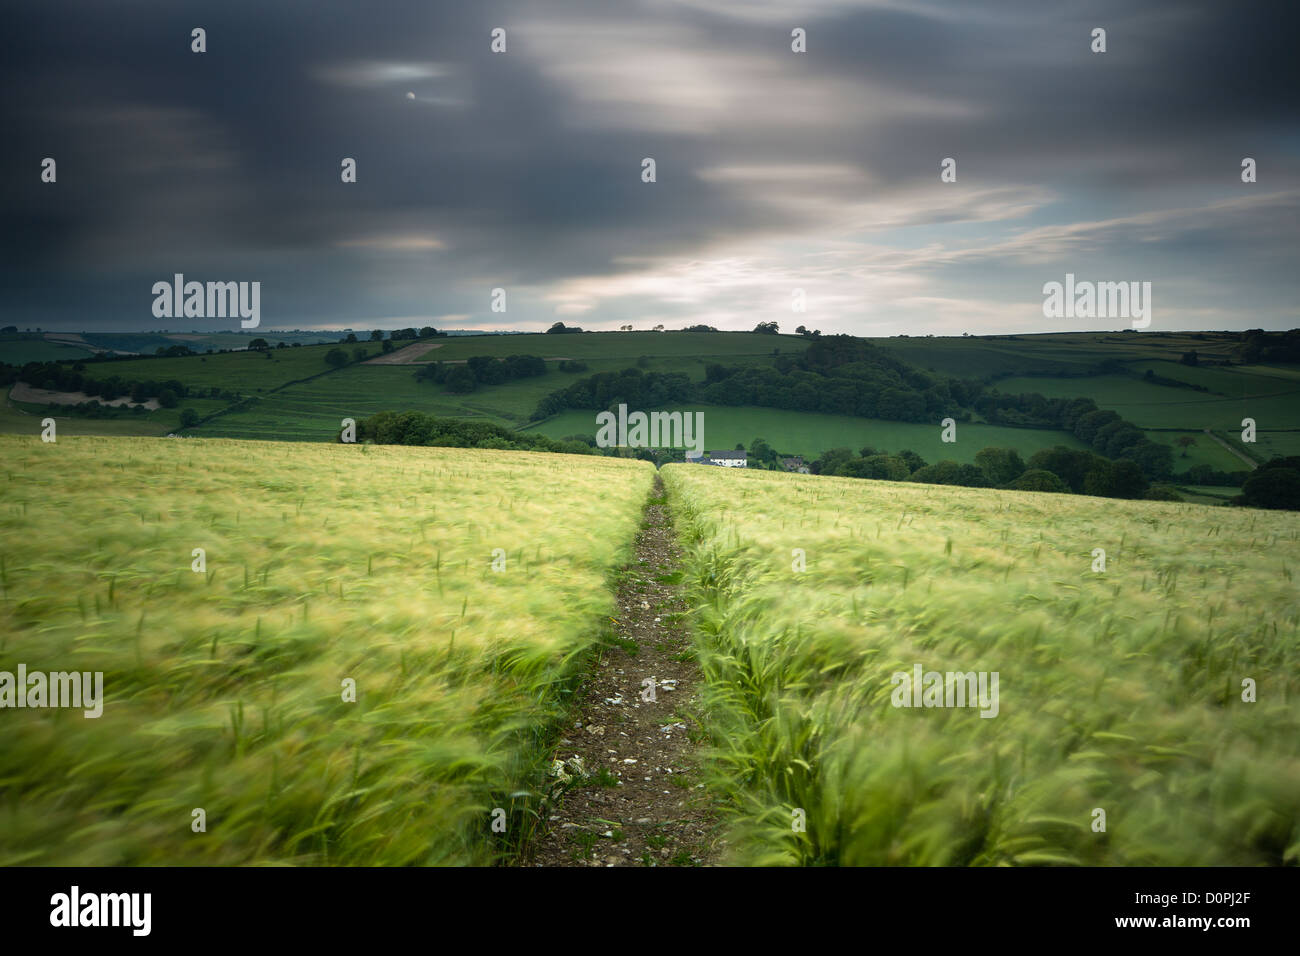 A barley field, nr Plush, Dorset, England, UK - Stock Image